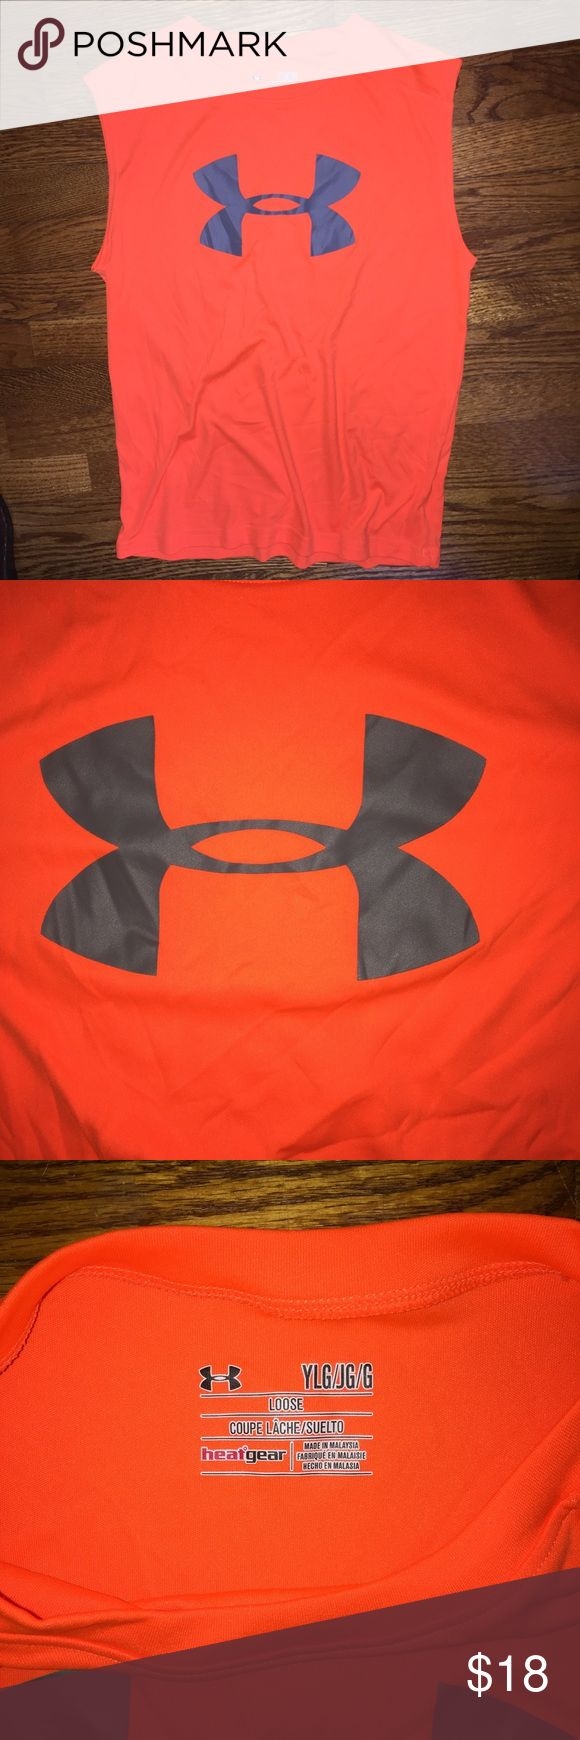 Under Armour tank top...Size YL Like new Under Armour tank top...orange with grey logo...Size YL...no rips, stains or snags...from a smoke free home! Under Armour Shirts & Tops Tank Tops